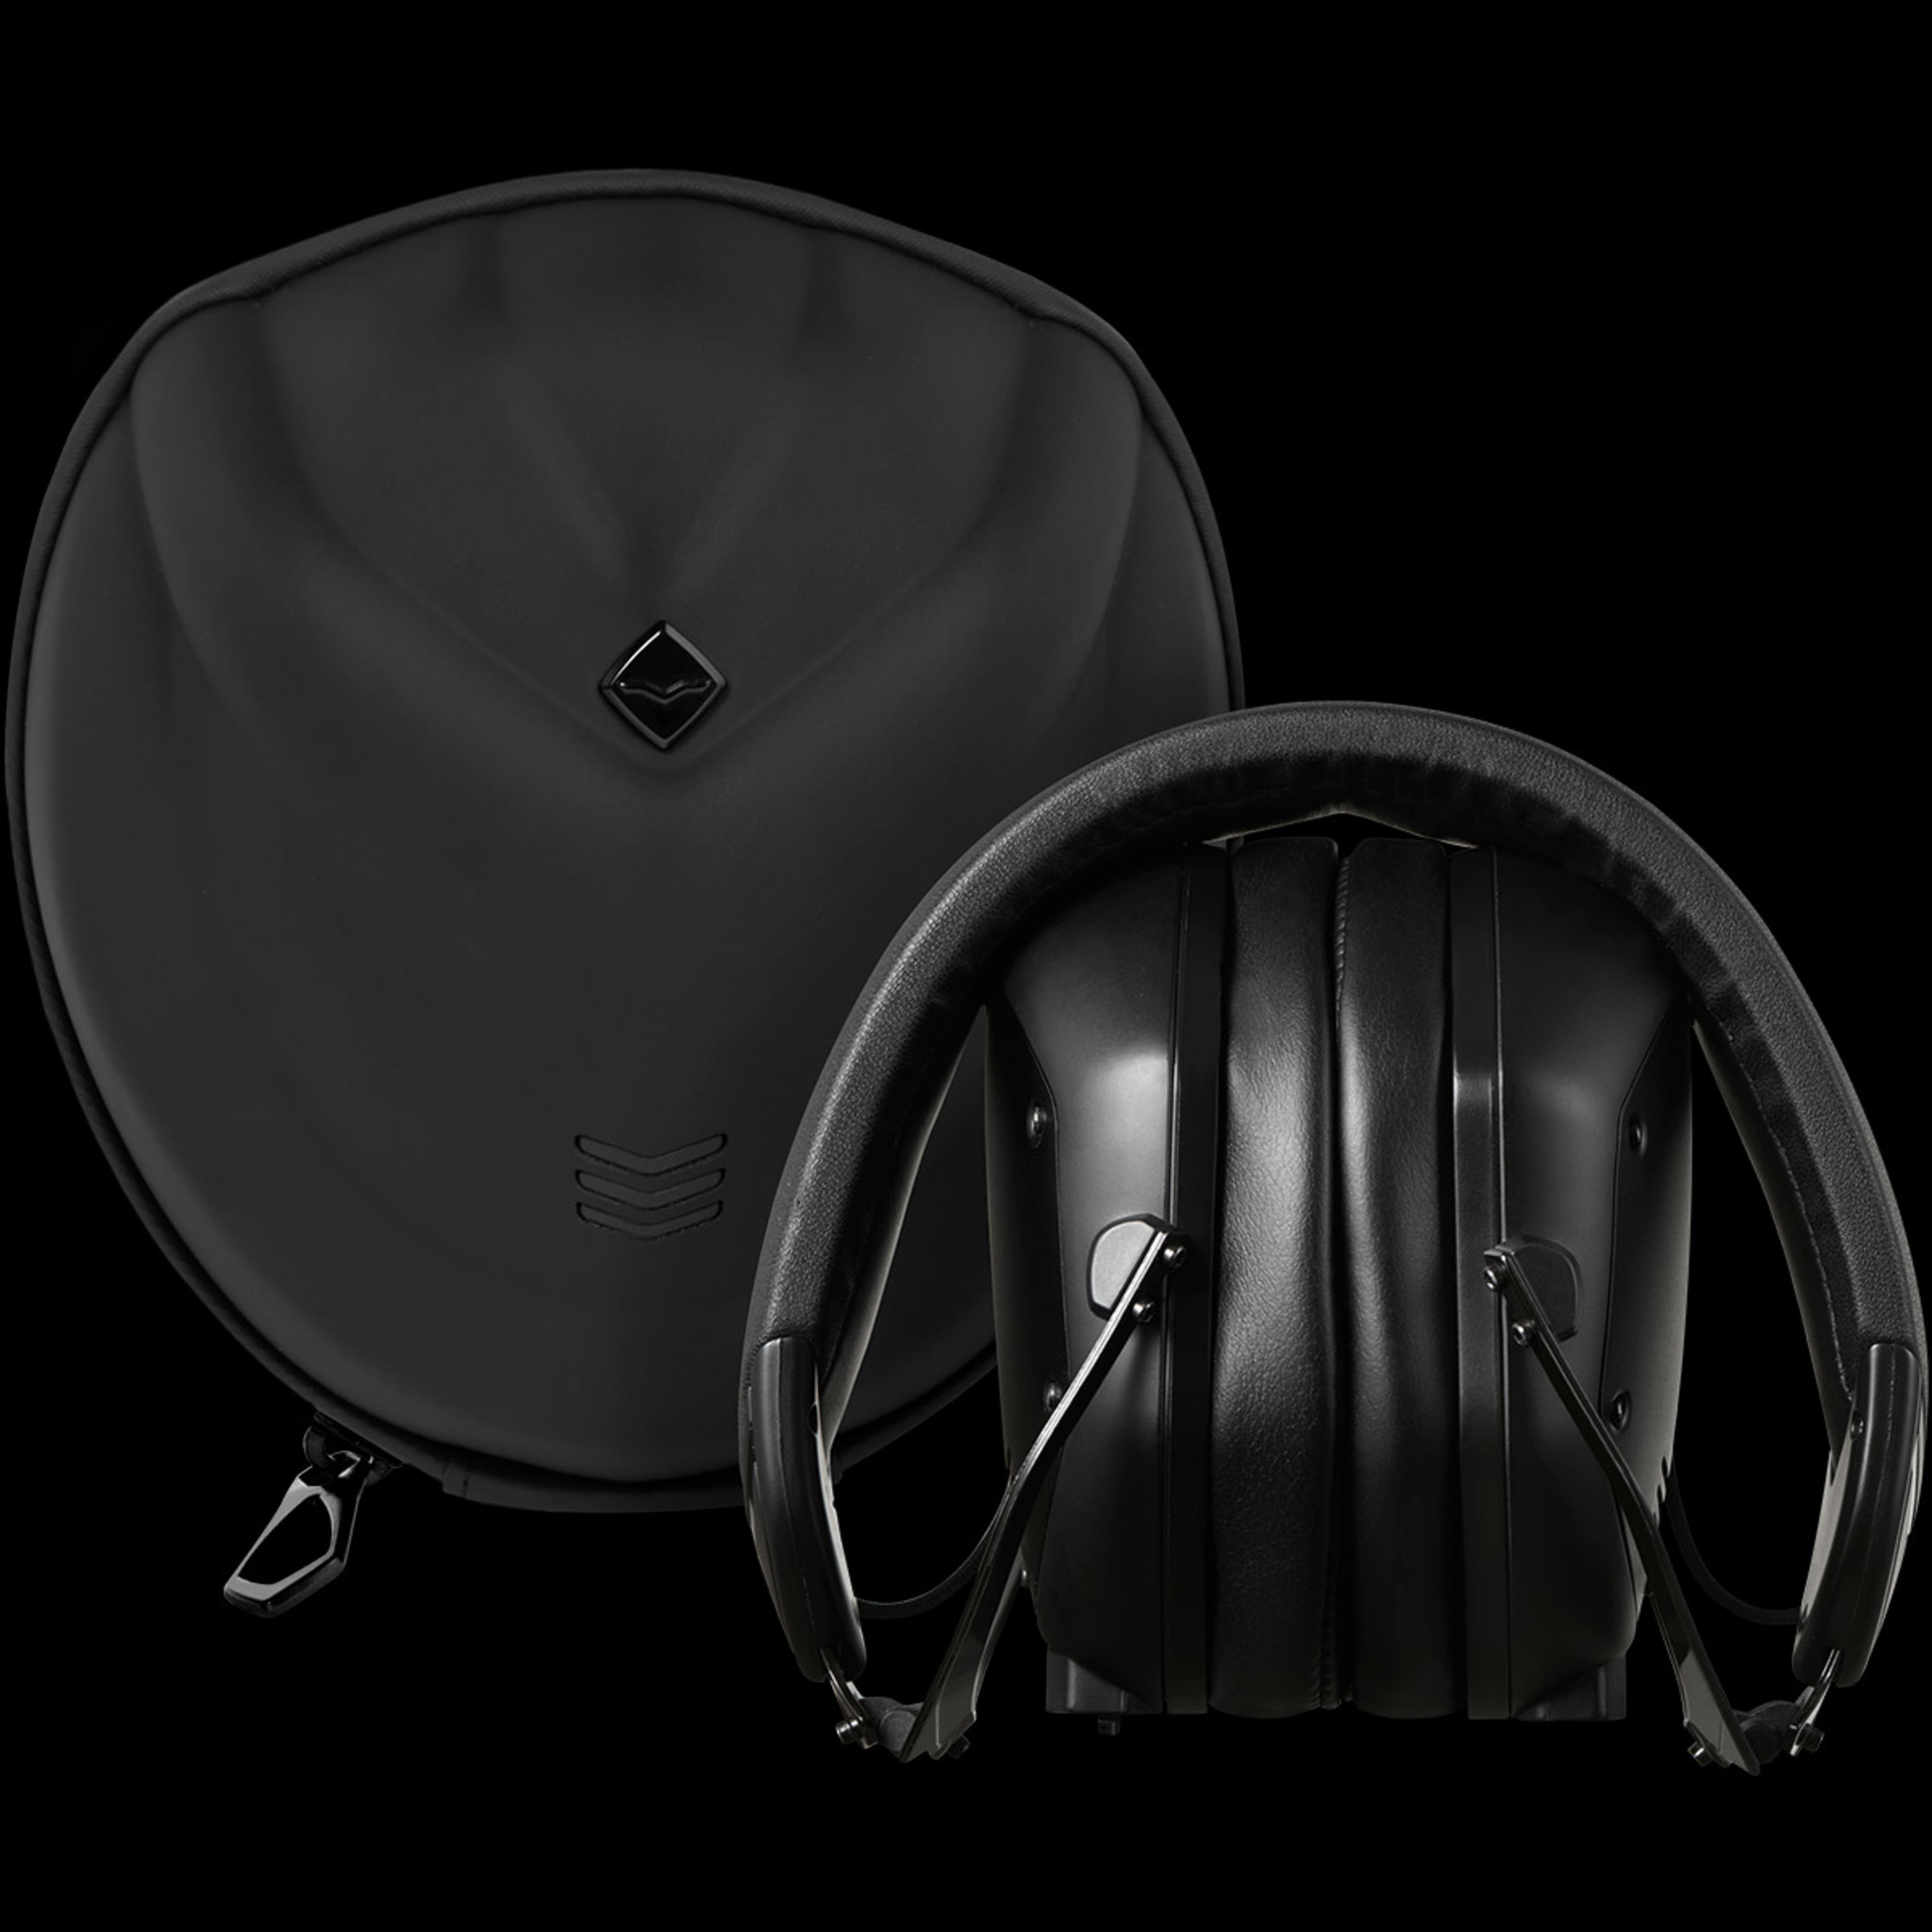 Folded Crossfade M-100 Master with its protective travel carry case